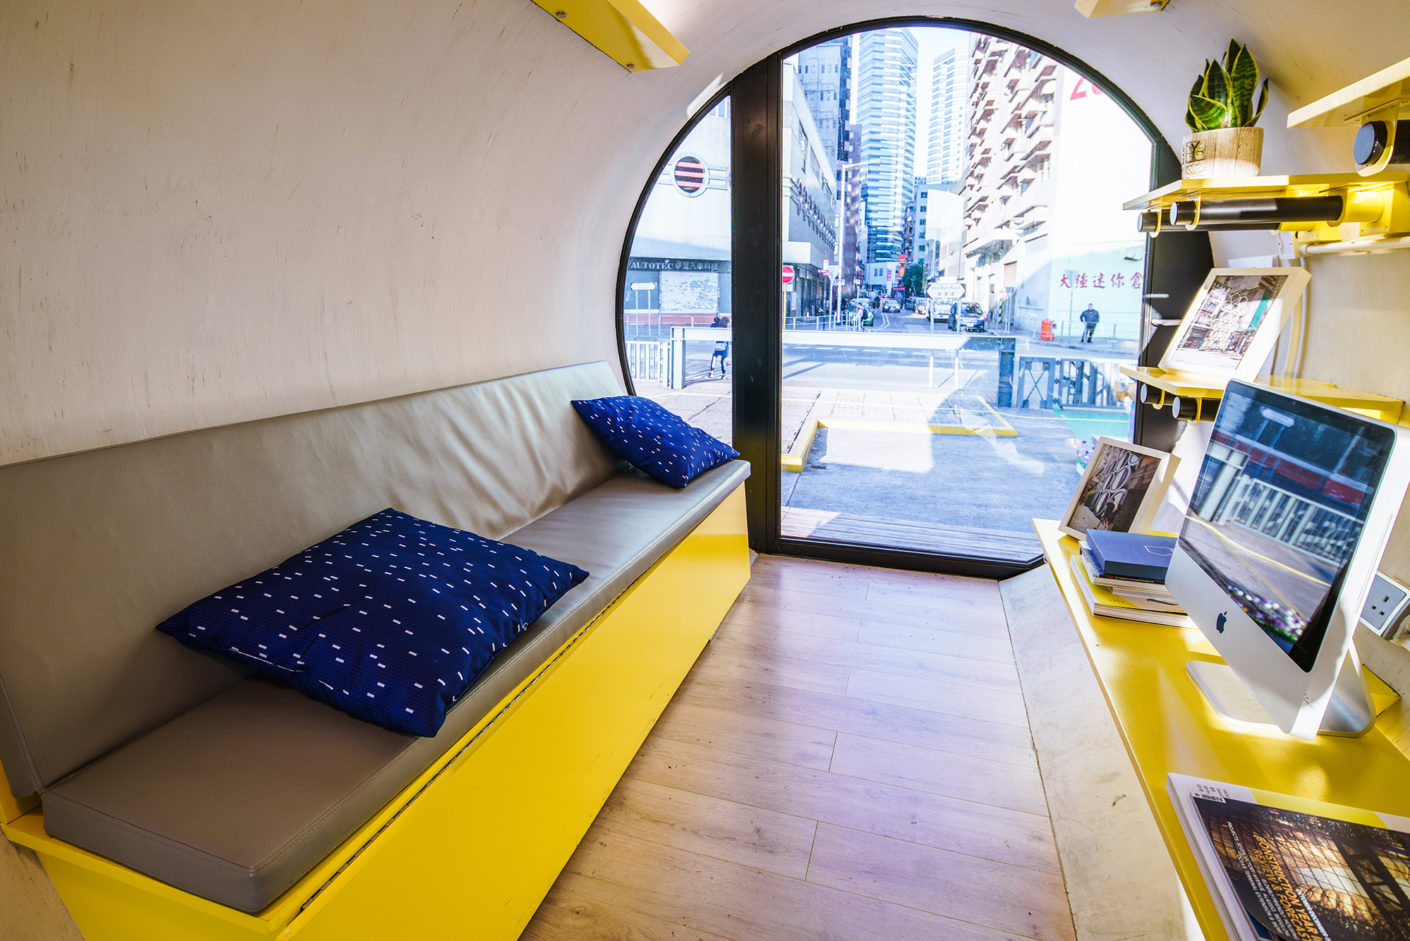 OPod Tube House, Living in the tube